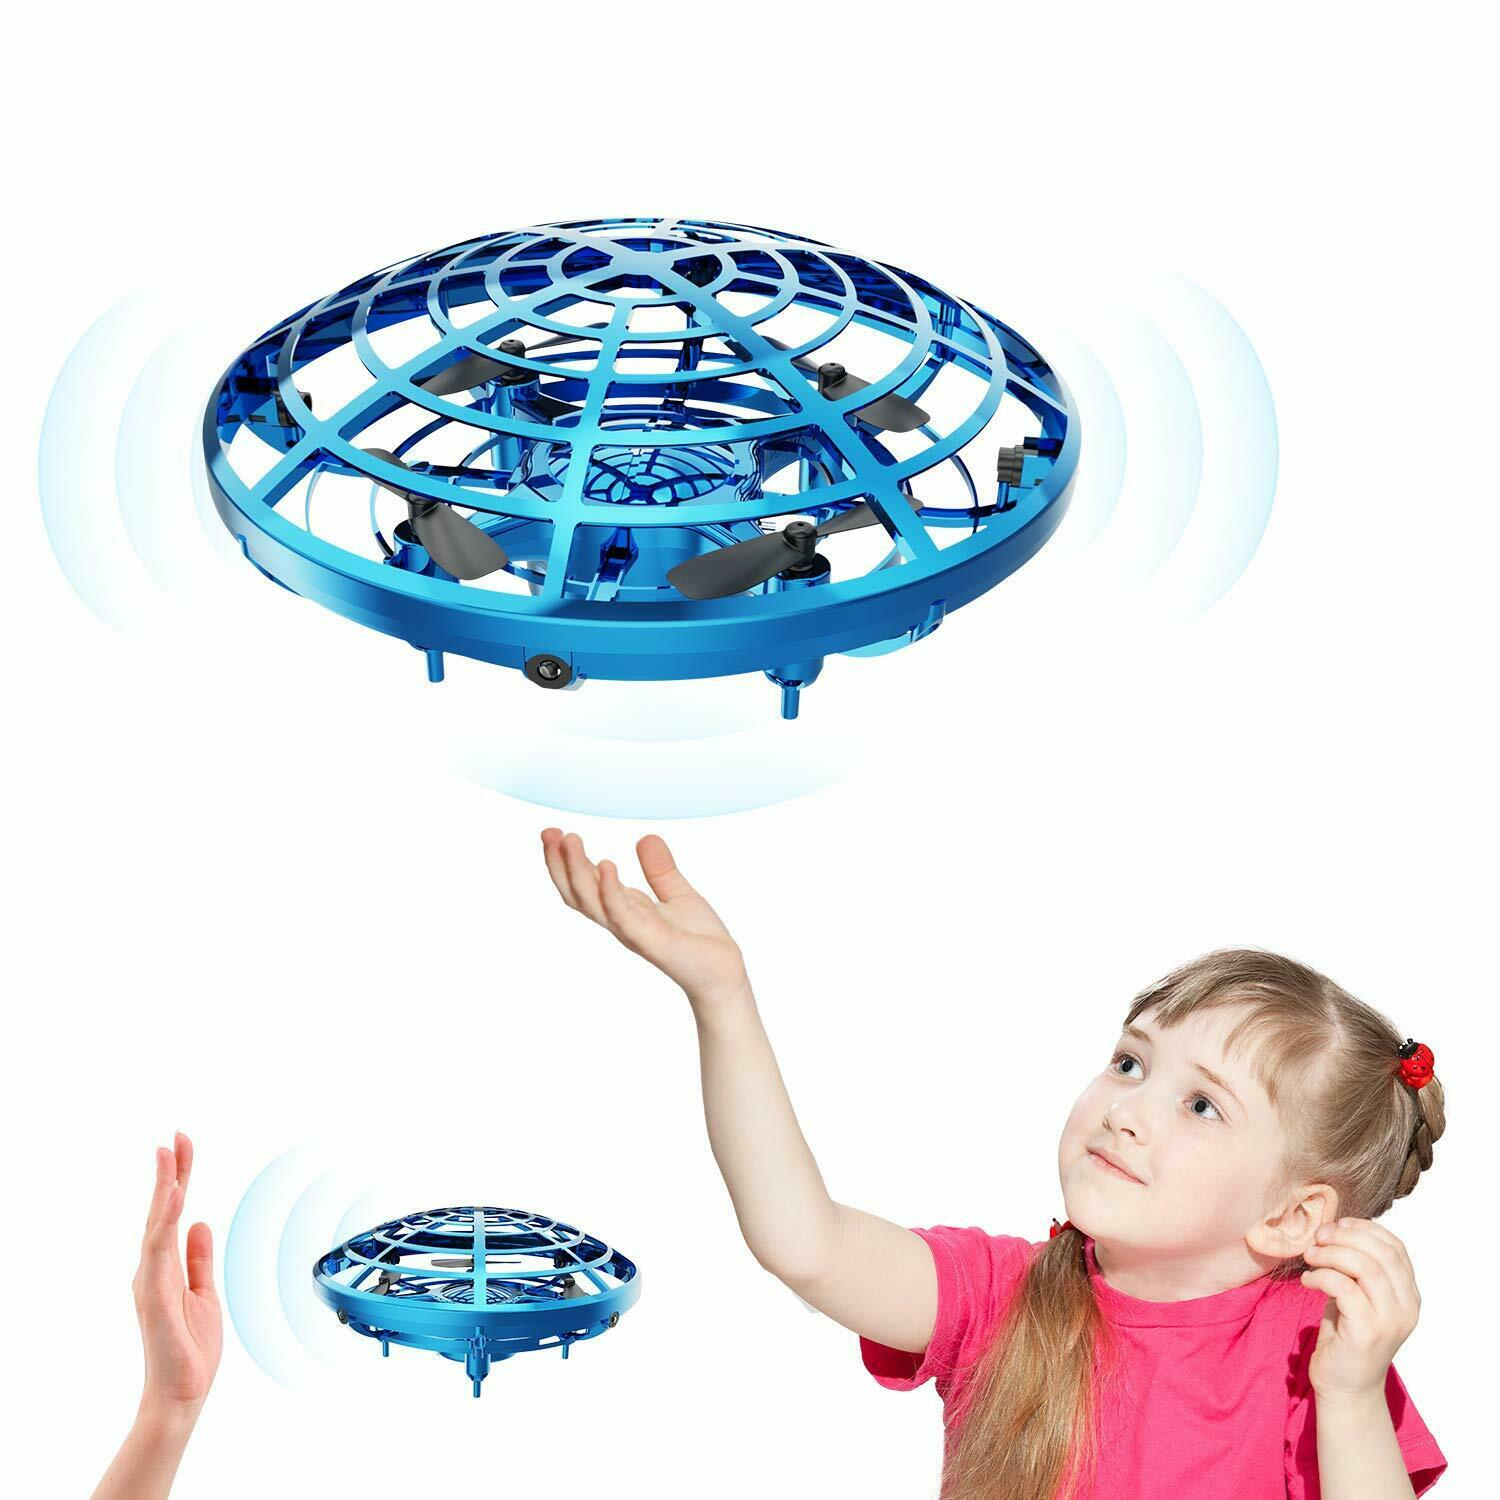 Smart Ufo Remote Hand Operated Control Flying Ball Helicopter Quadcopter Toys Mini Drones For Kids